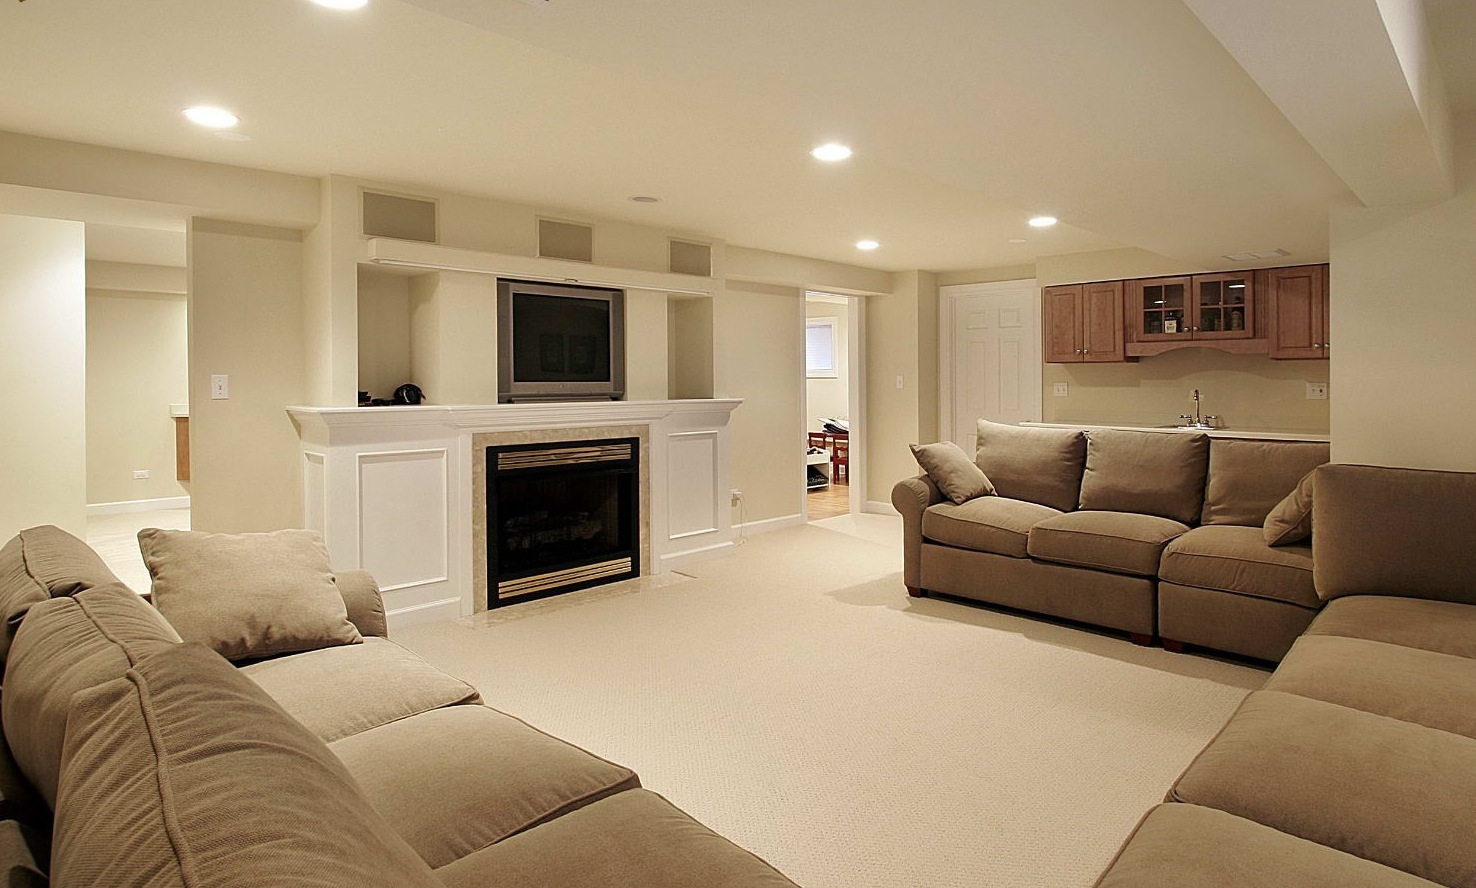 30 basement remodeling ideas inspiration for Living room remodel ideas